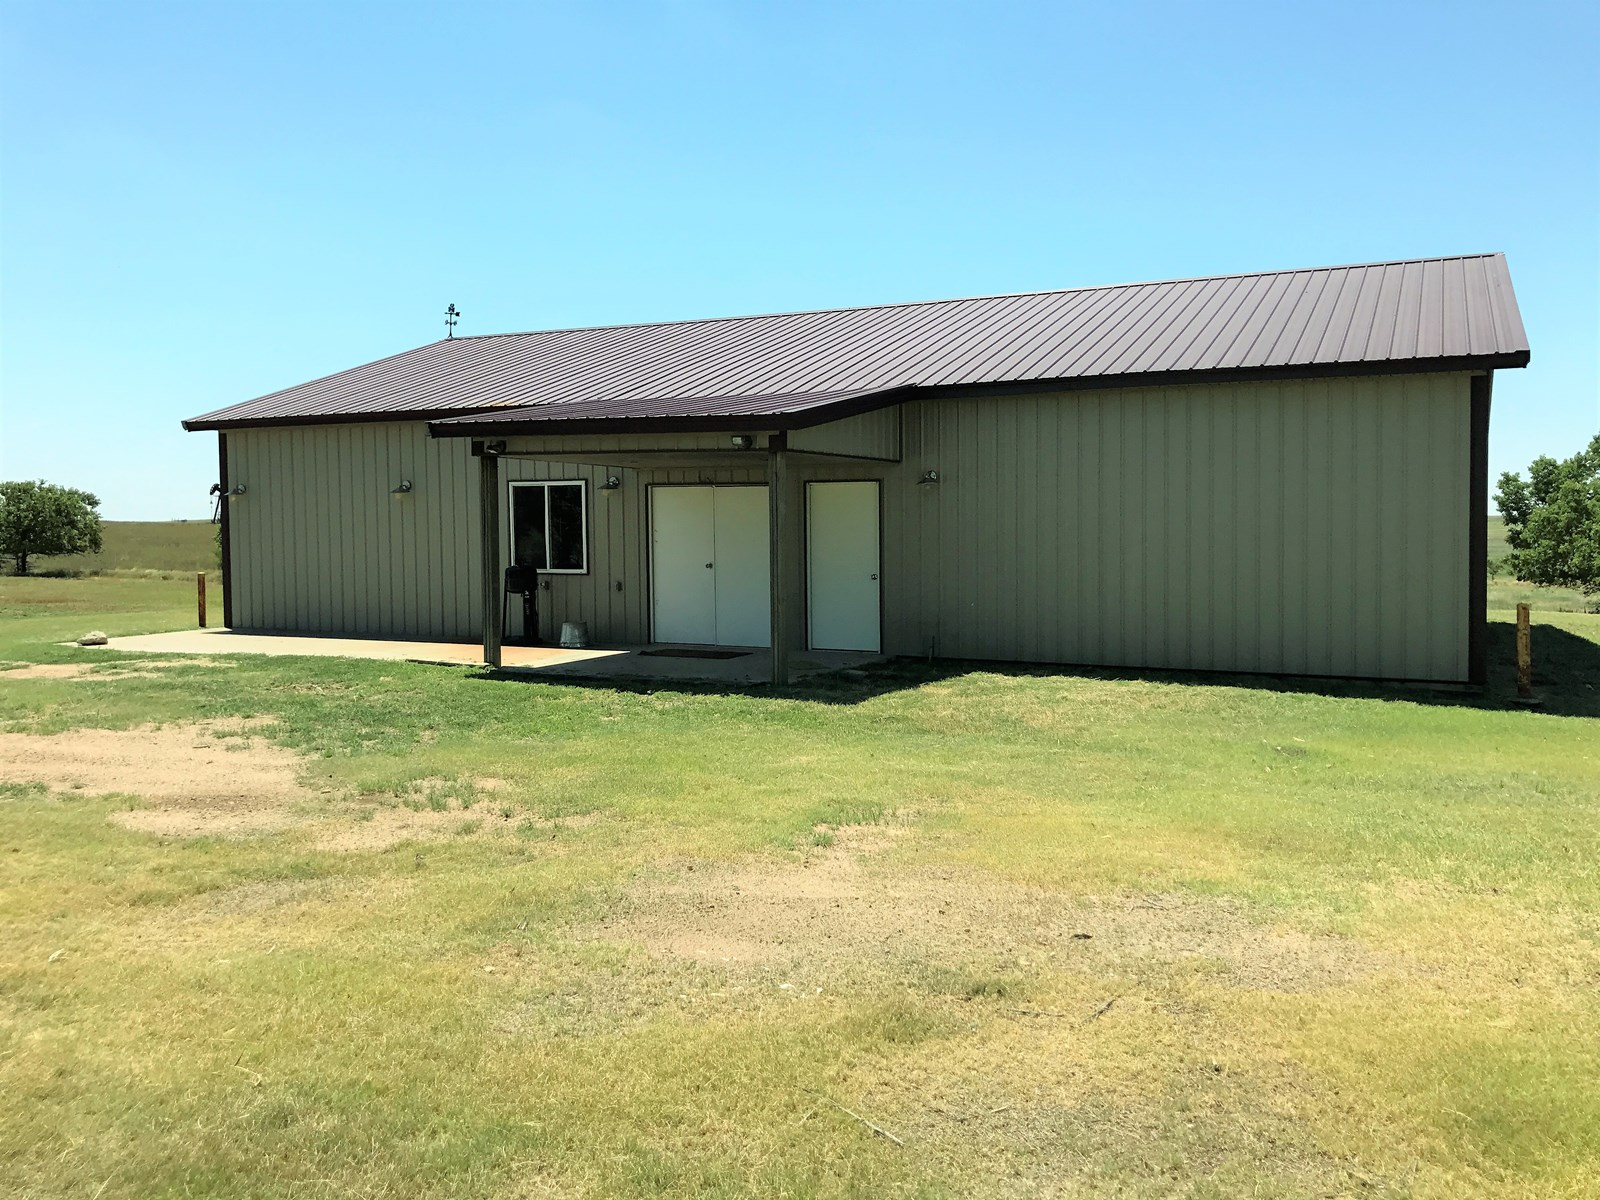 Kiowa County, Kansas Hunting Lodge on 5 Acres For Sale